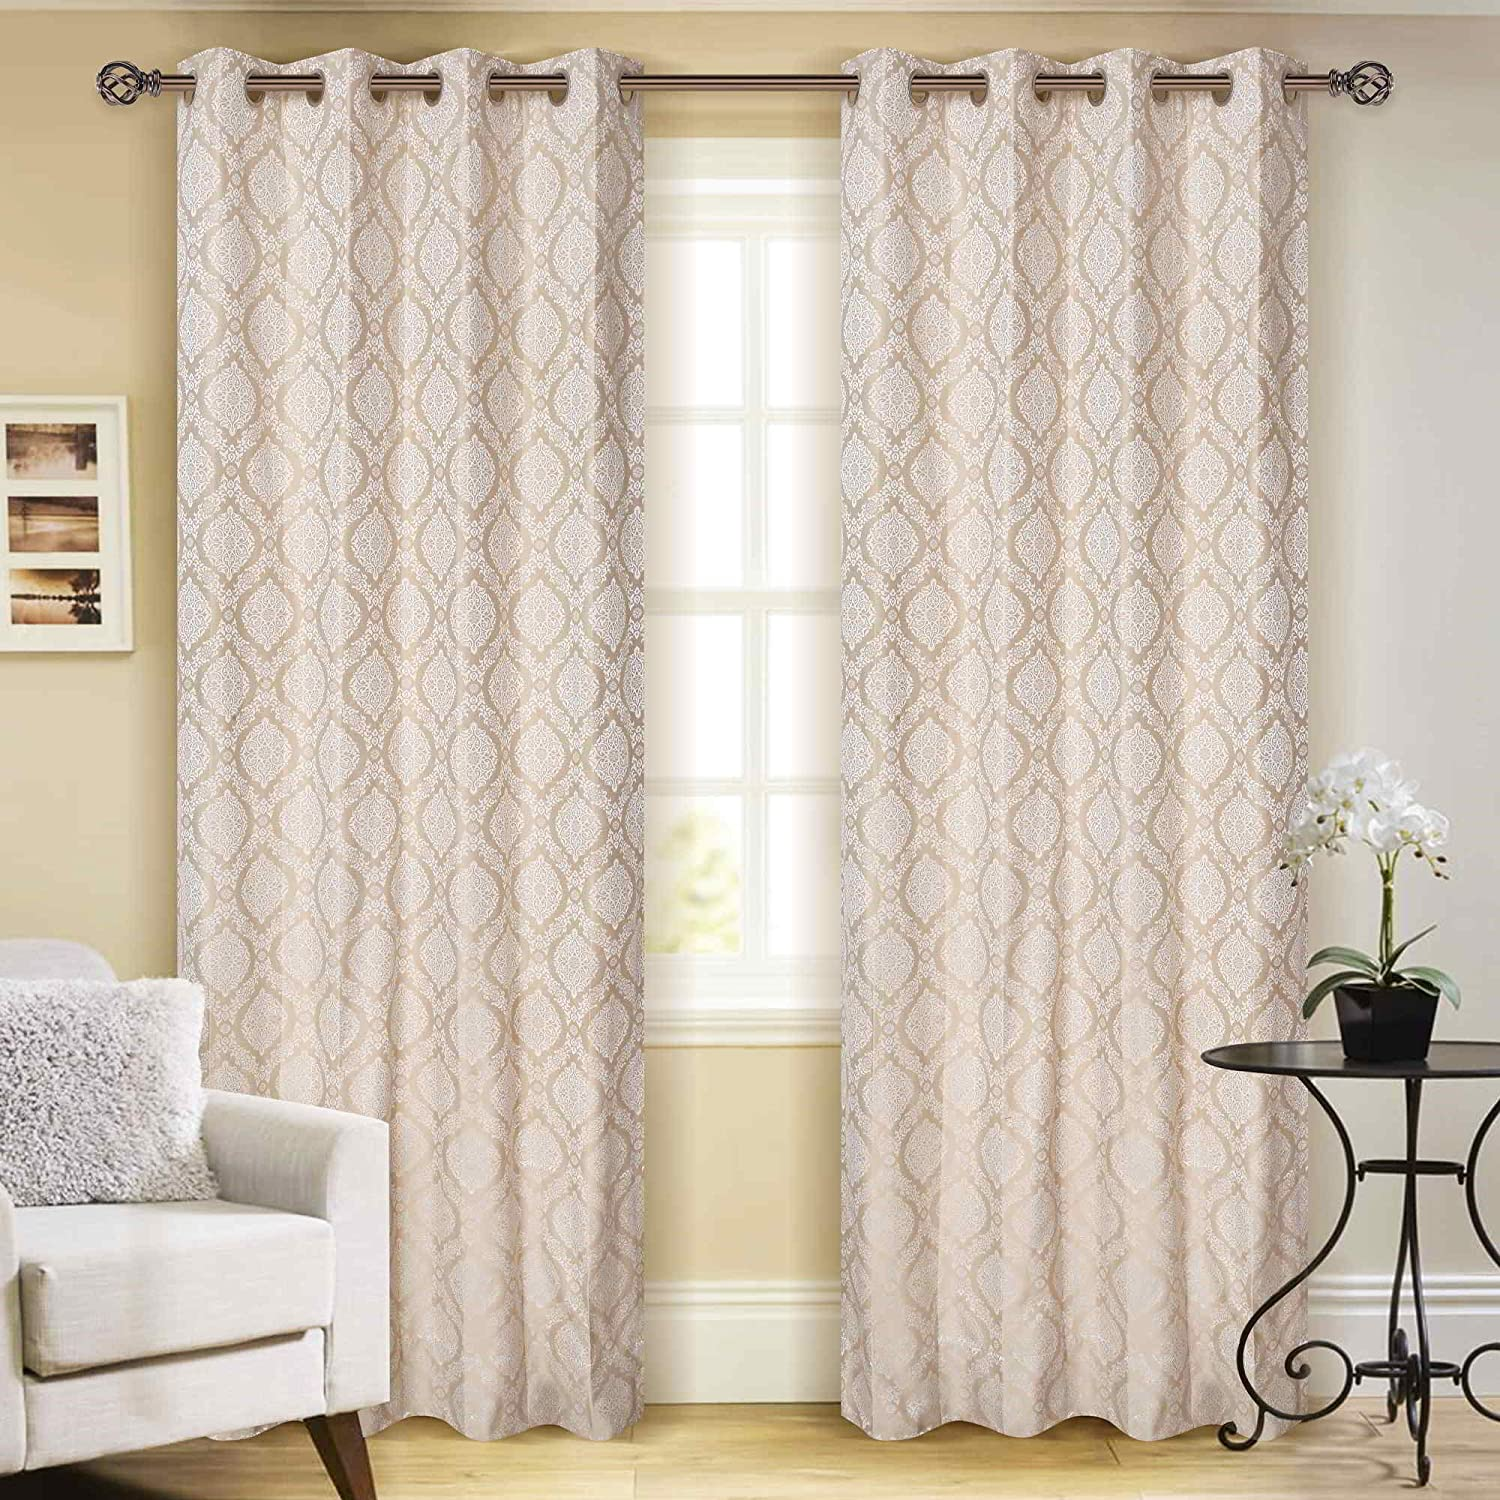 Buy Ayodhyam Decor Beautiful Fancy Modern Printed 2 Piece Eyelet Polyester Heavy Curtain Set Living Room Hotel Resort Restaurant Home Decor Ivory 7 X 4 Feet Online At Low Prices In India Amazon In